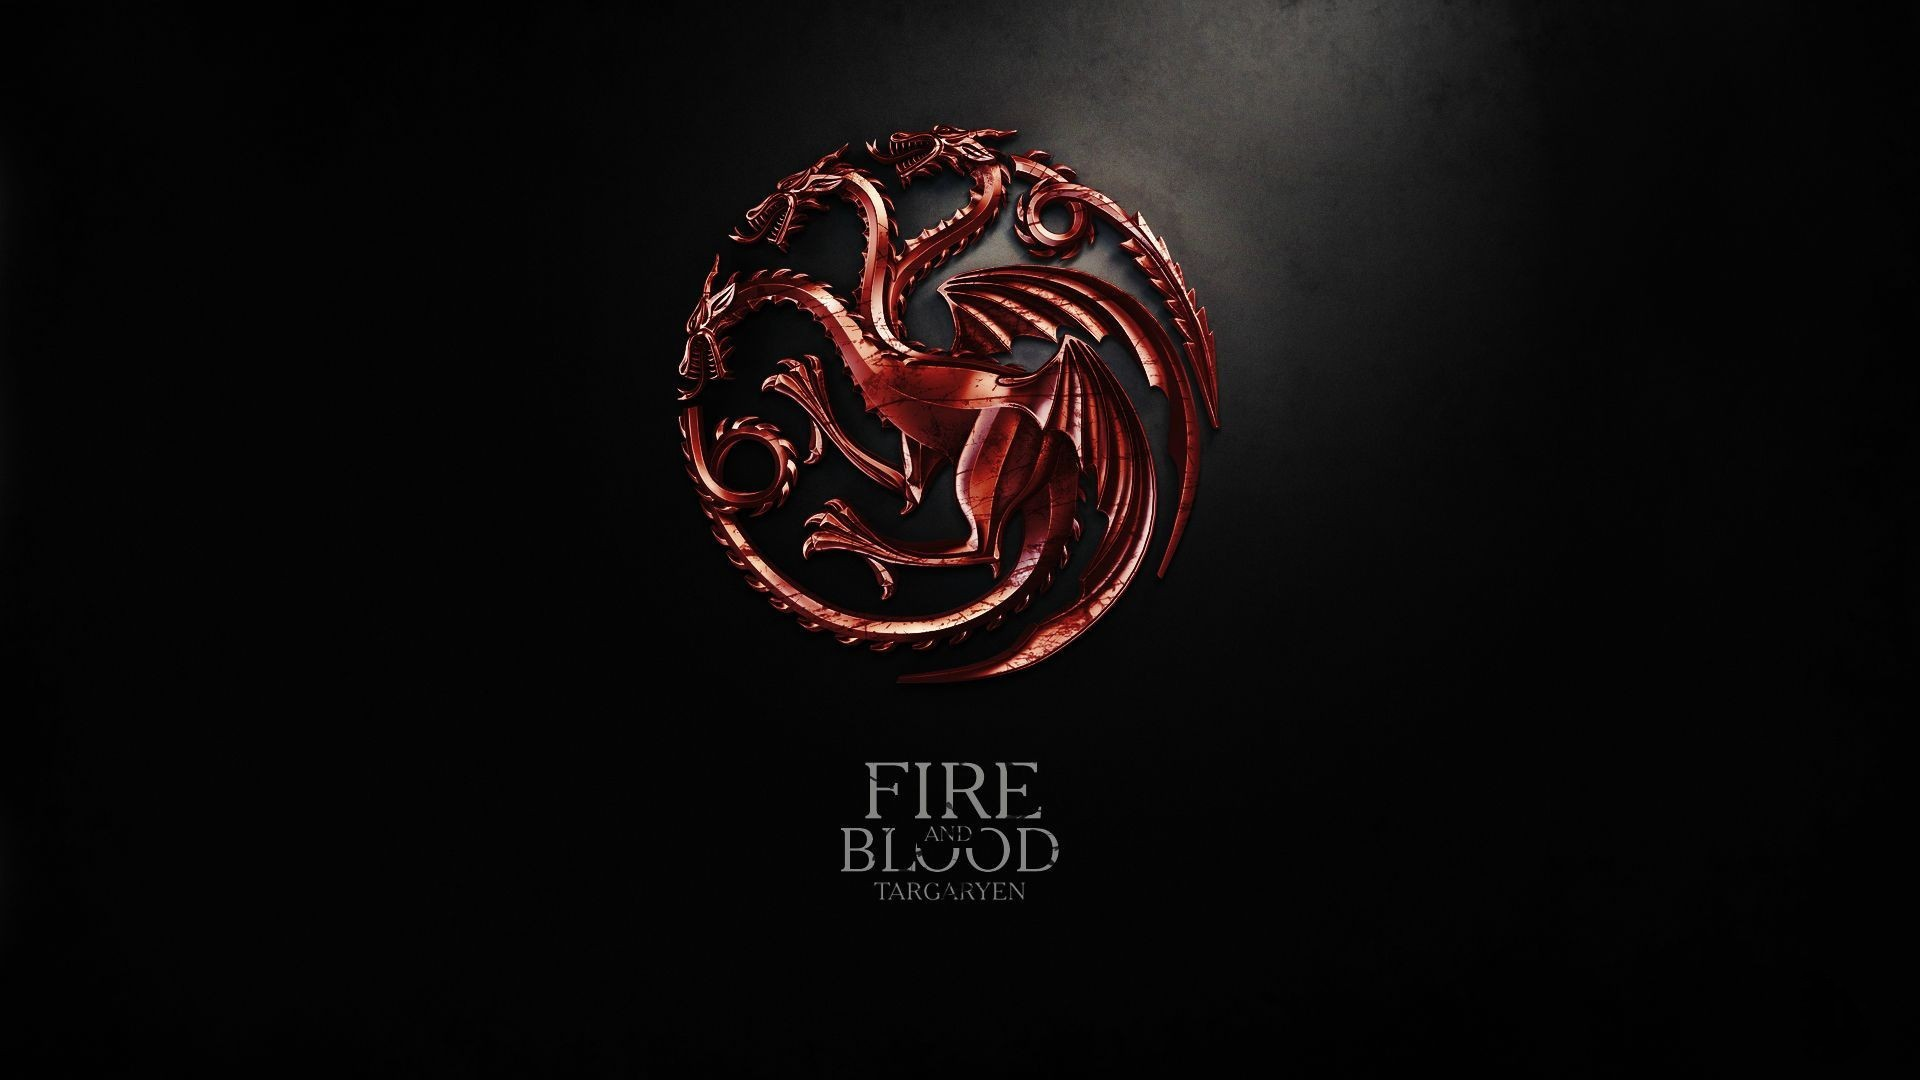 House lannister sigil wallpaper 73 images for House of wallpaper